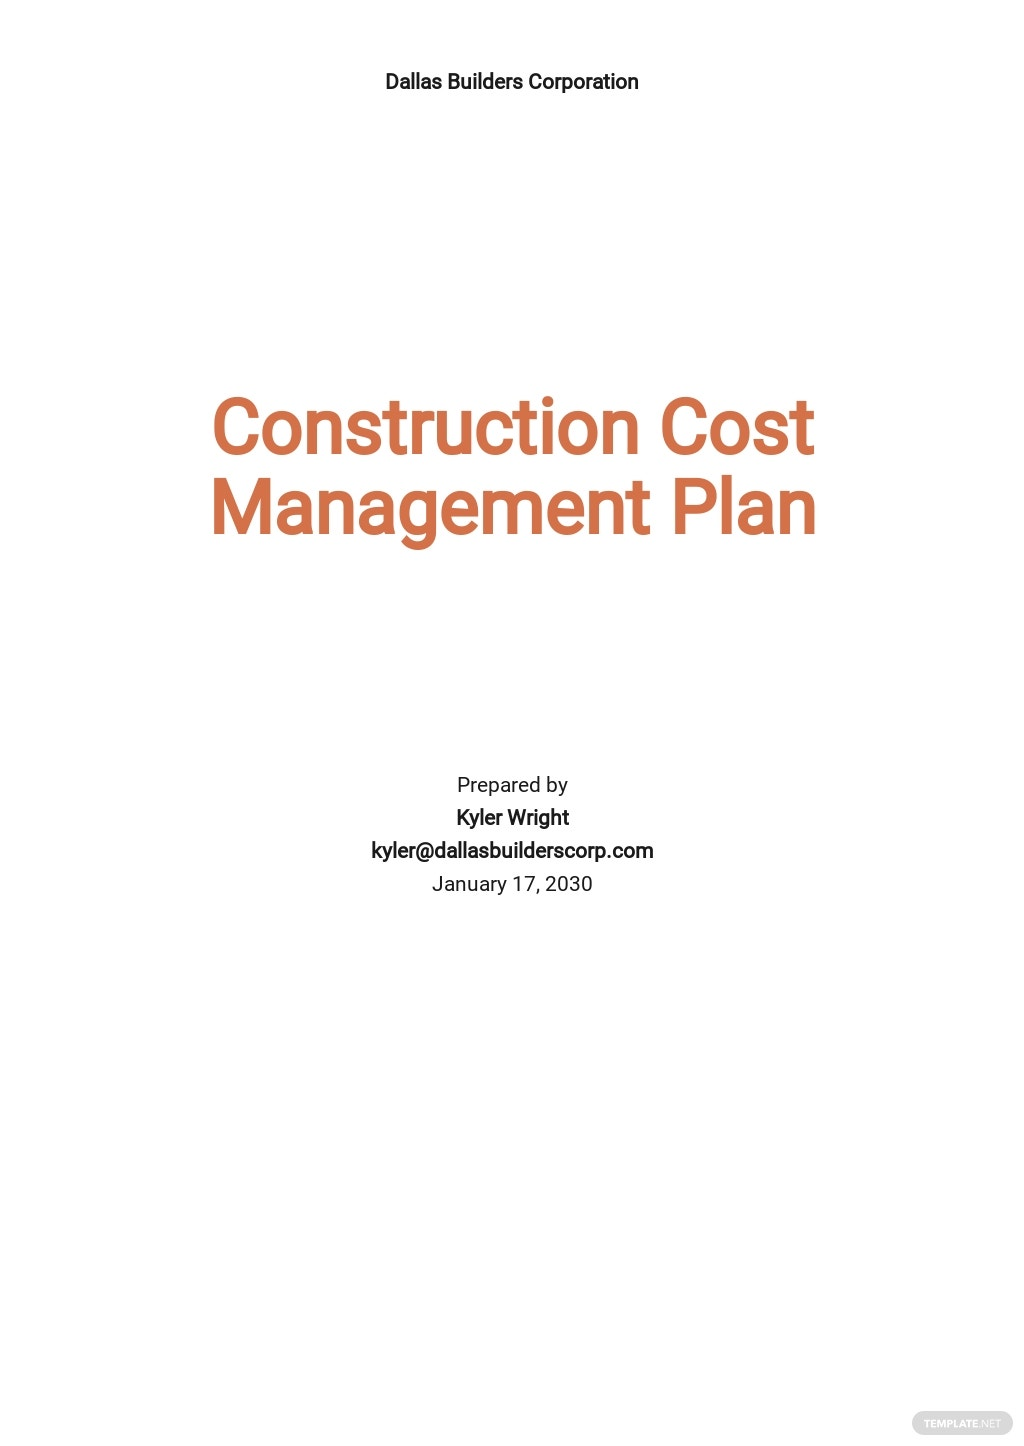 Construction Cost Management Plan Template